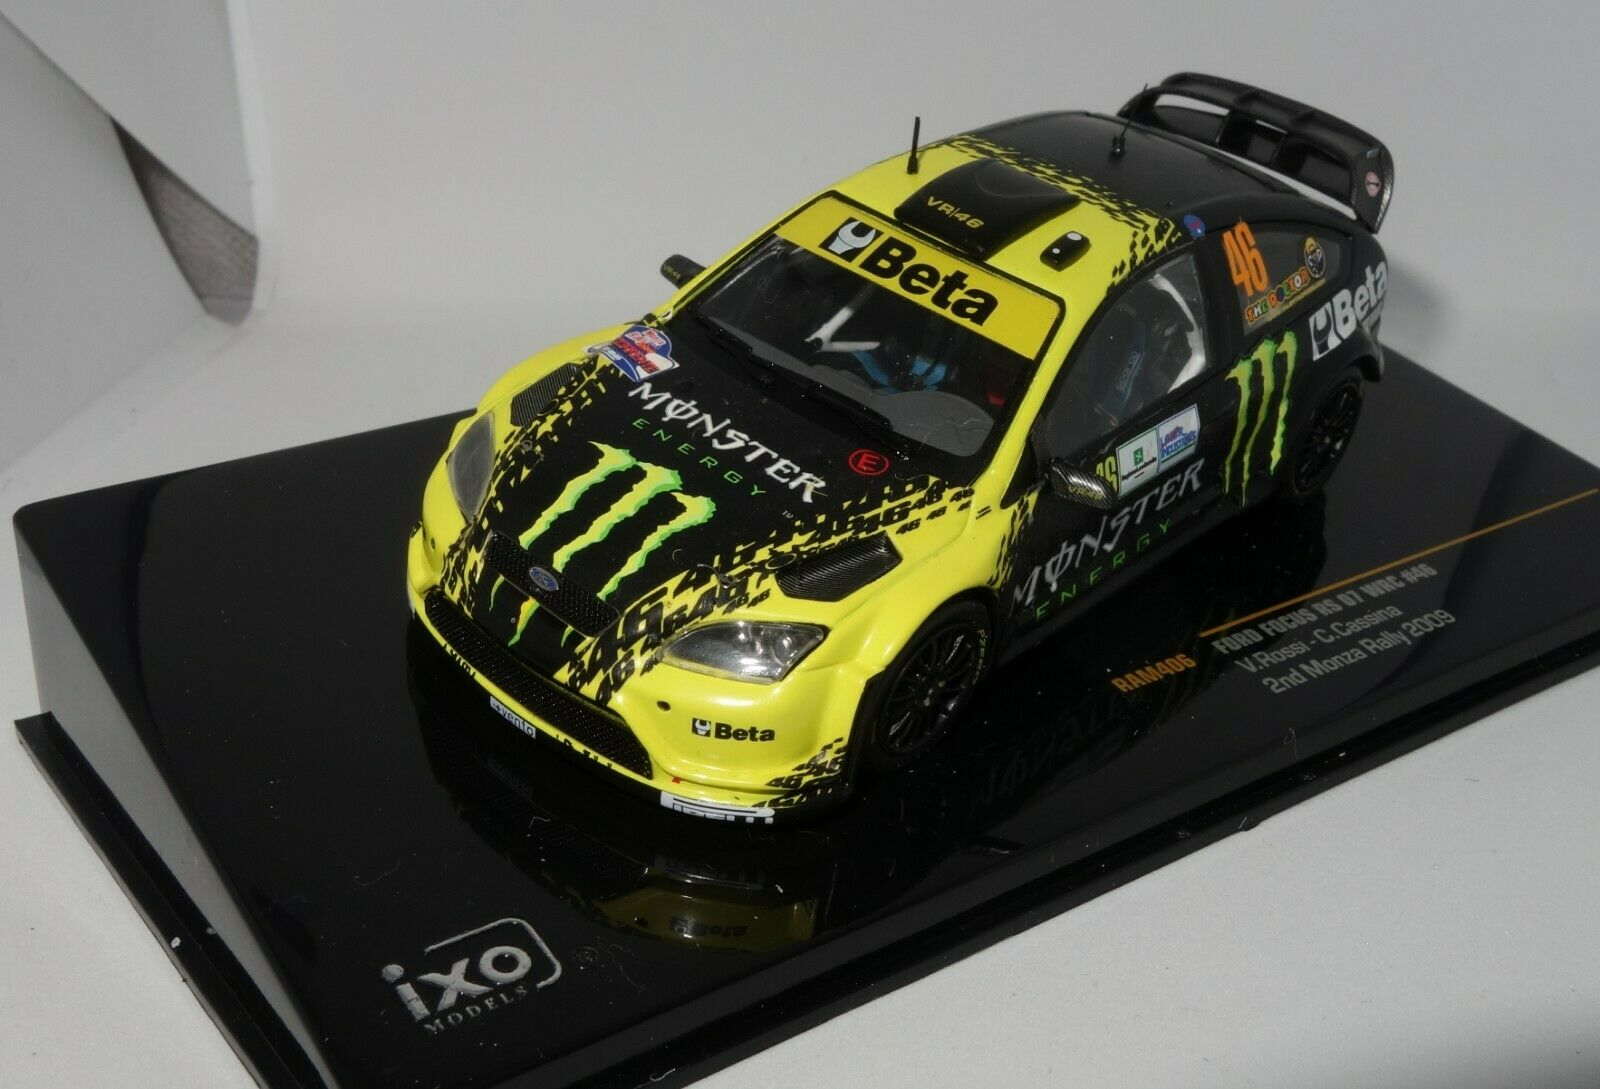 Ixo ram406 1 43 ford focus wrc monza rally 2009 rossi rare